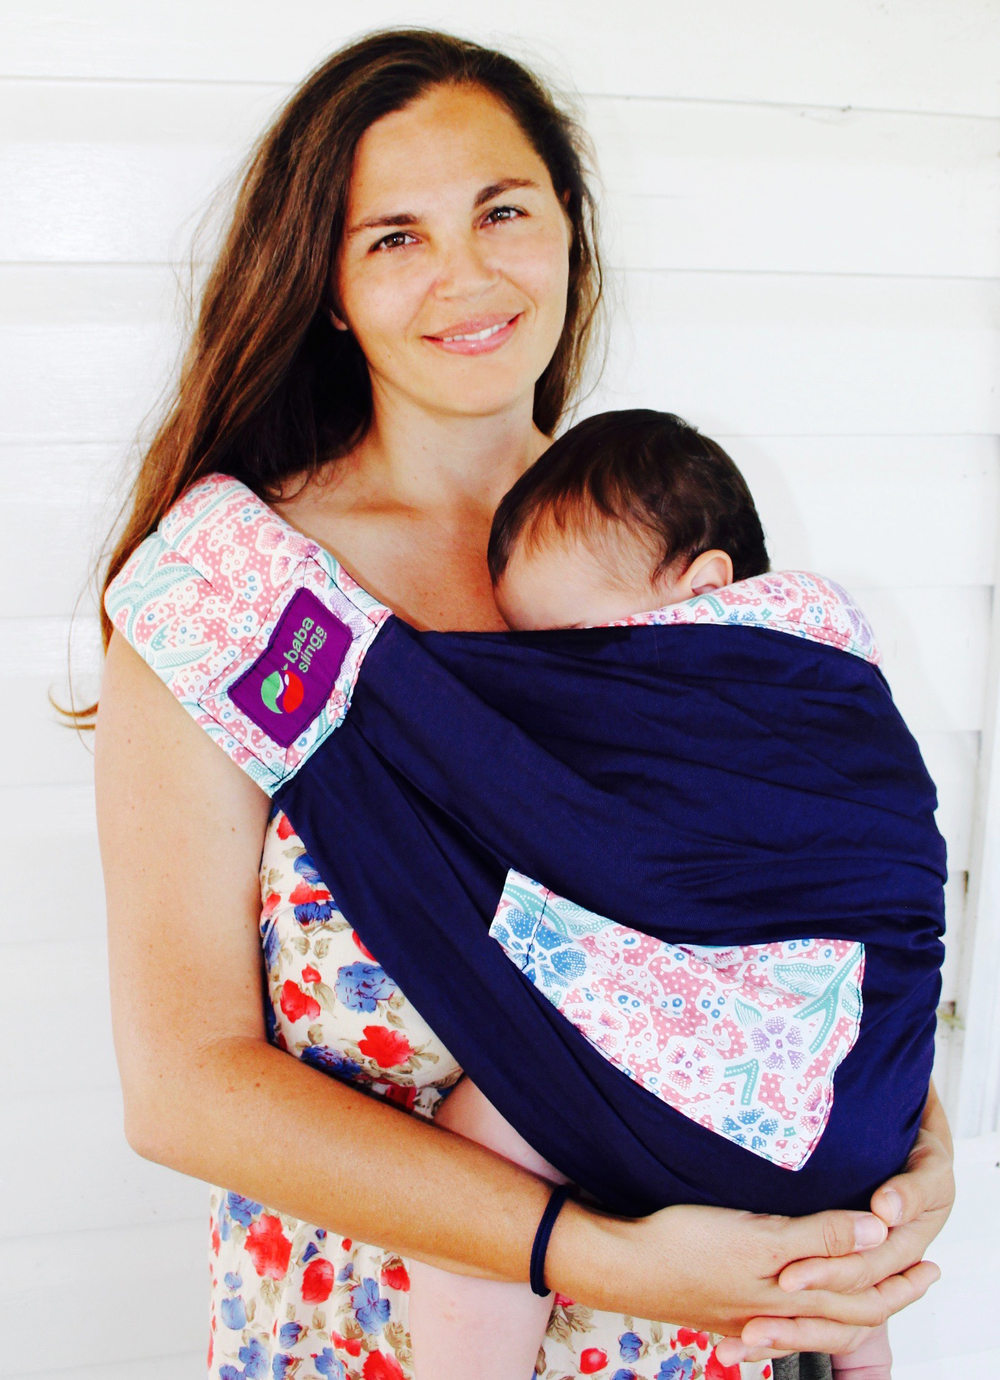 Our Beautiful Sister and friend Robyn, models the Navy/Batik